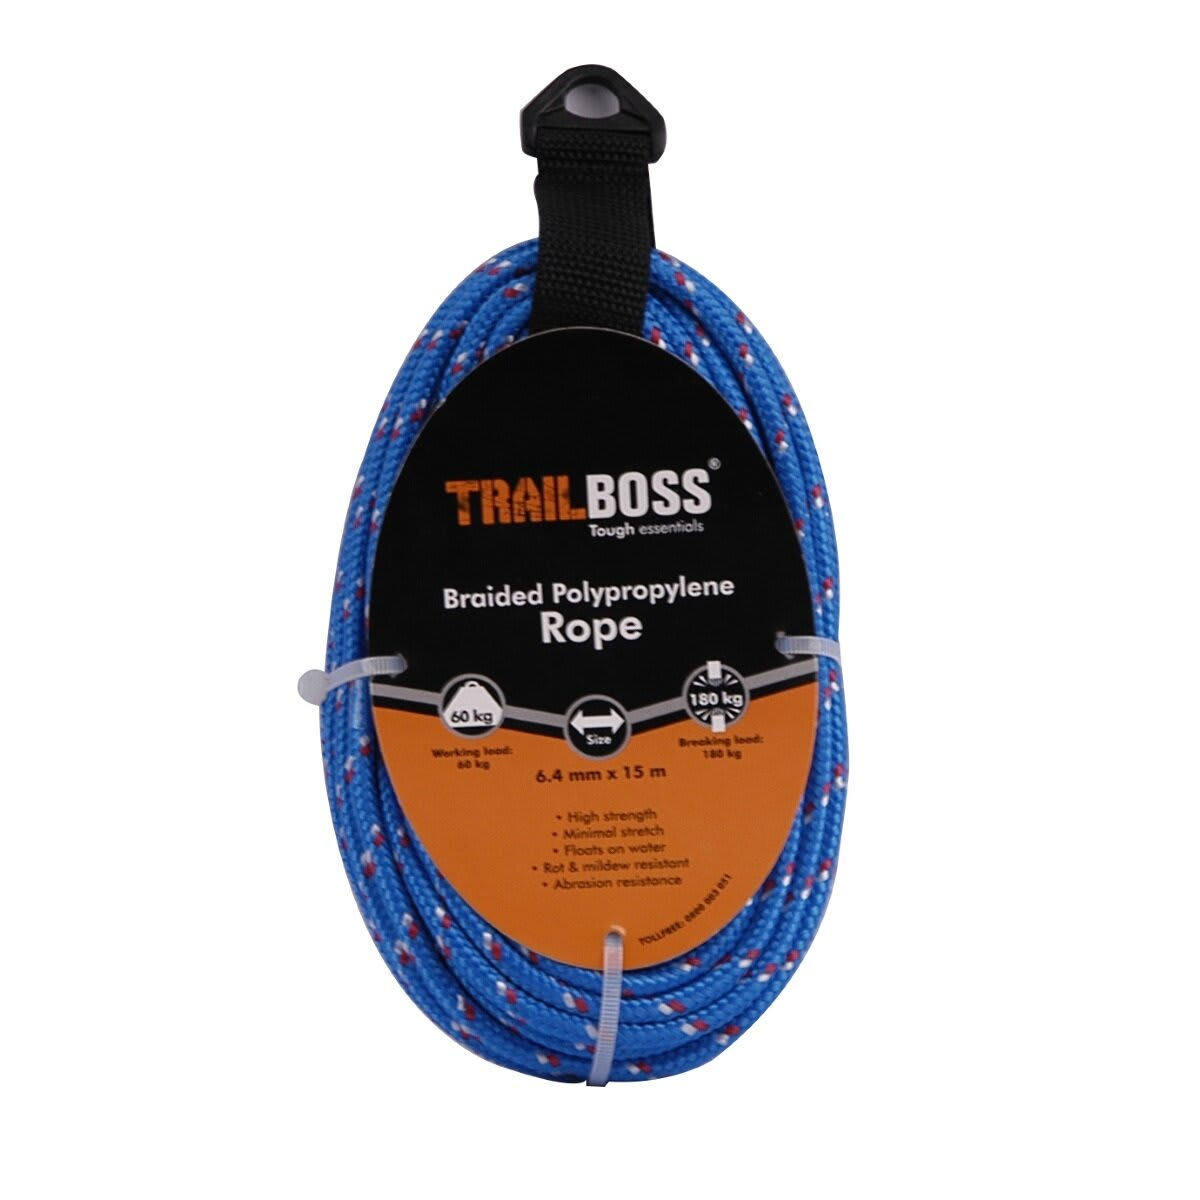 TrailBoss 6.4mm x 15m Braided Polypropylene Rope